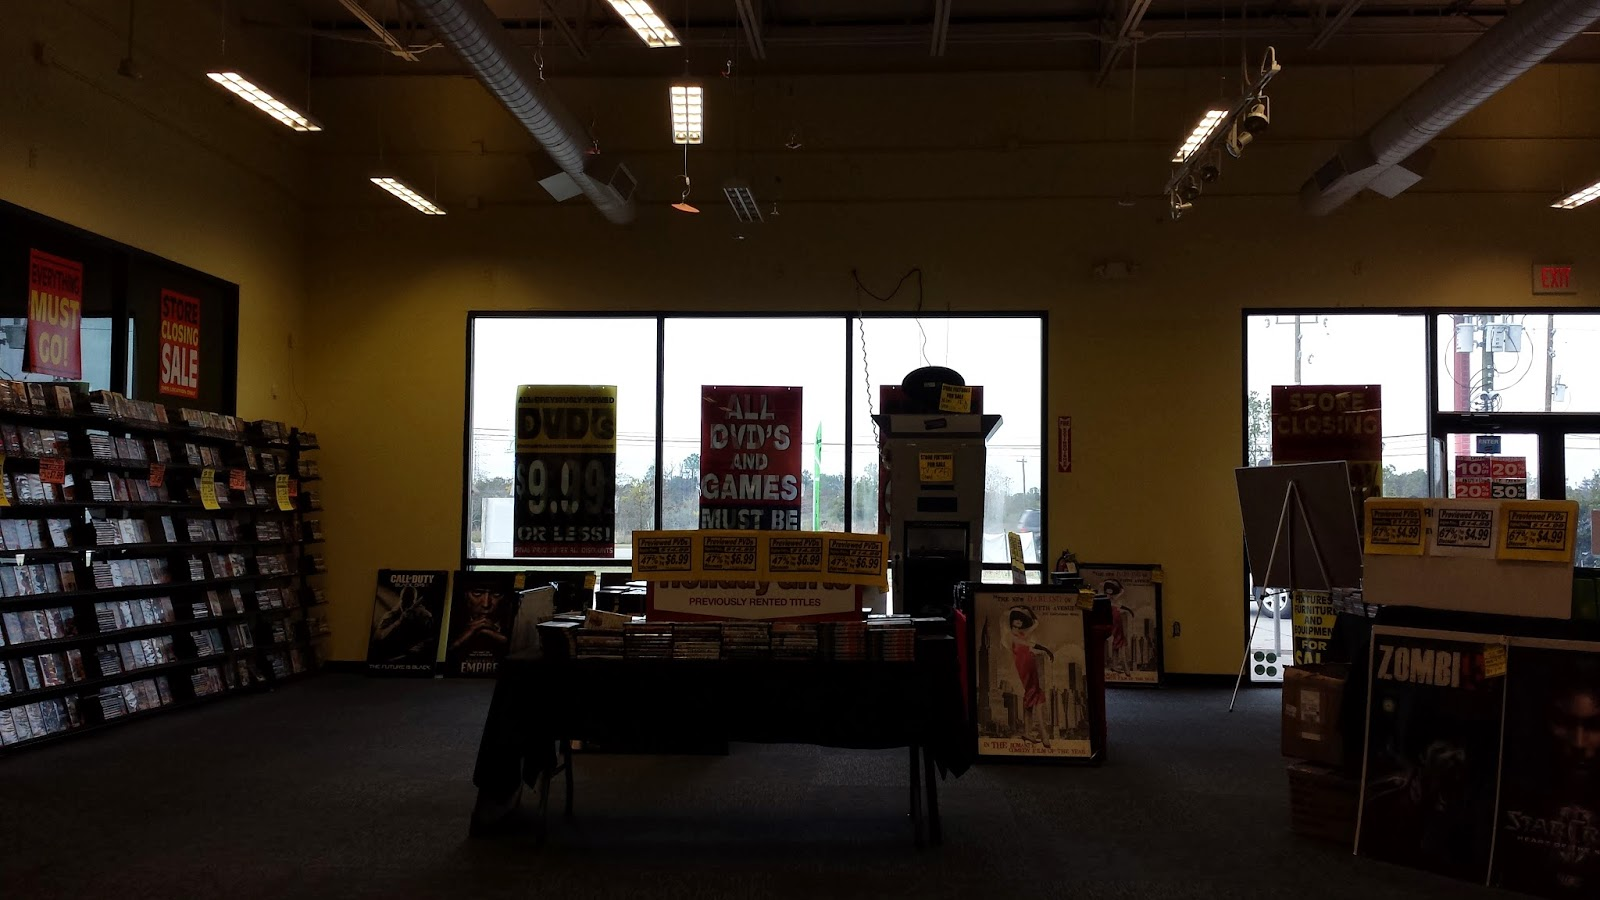 Choosy about chairs katy lifestyles amp homes magazine katy - Here Are Two Houston Area Stores In The Final Weeks Of The Going Out Of Business Sale Rip Blockbuster